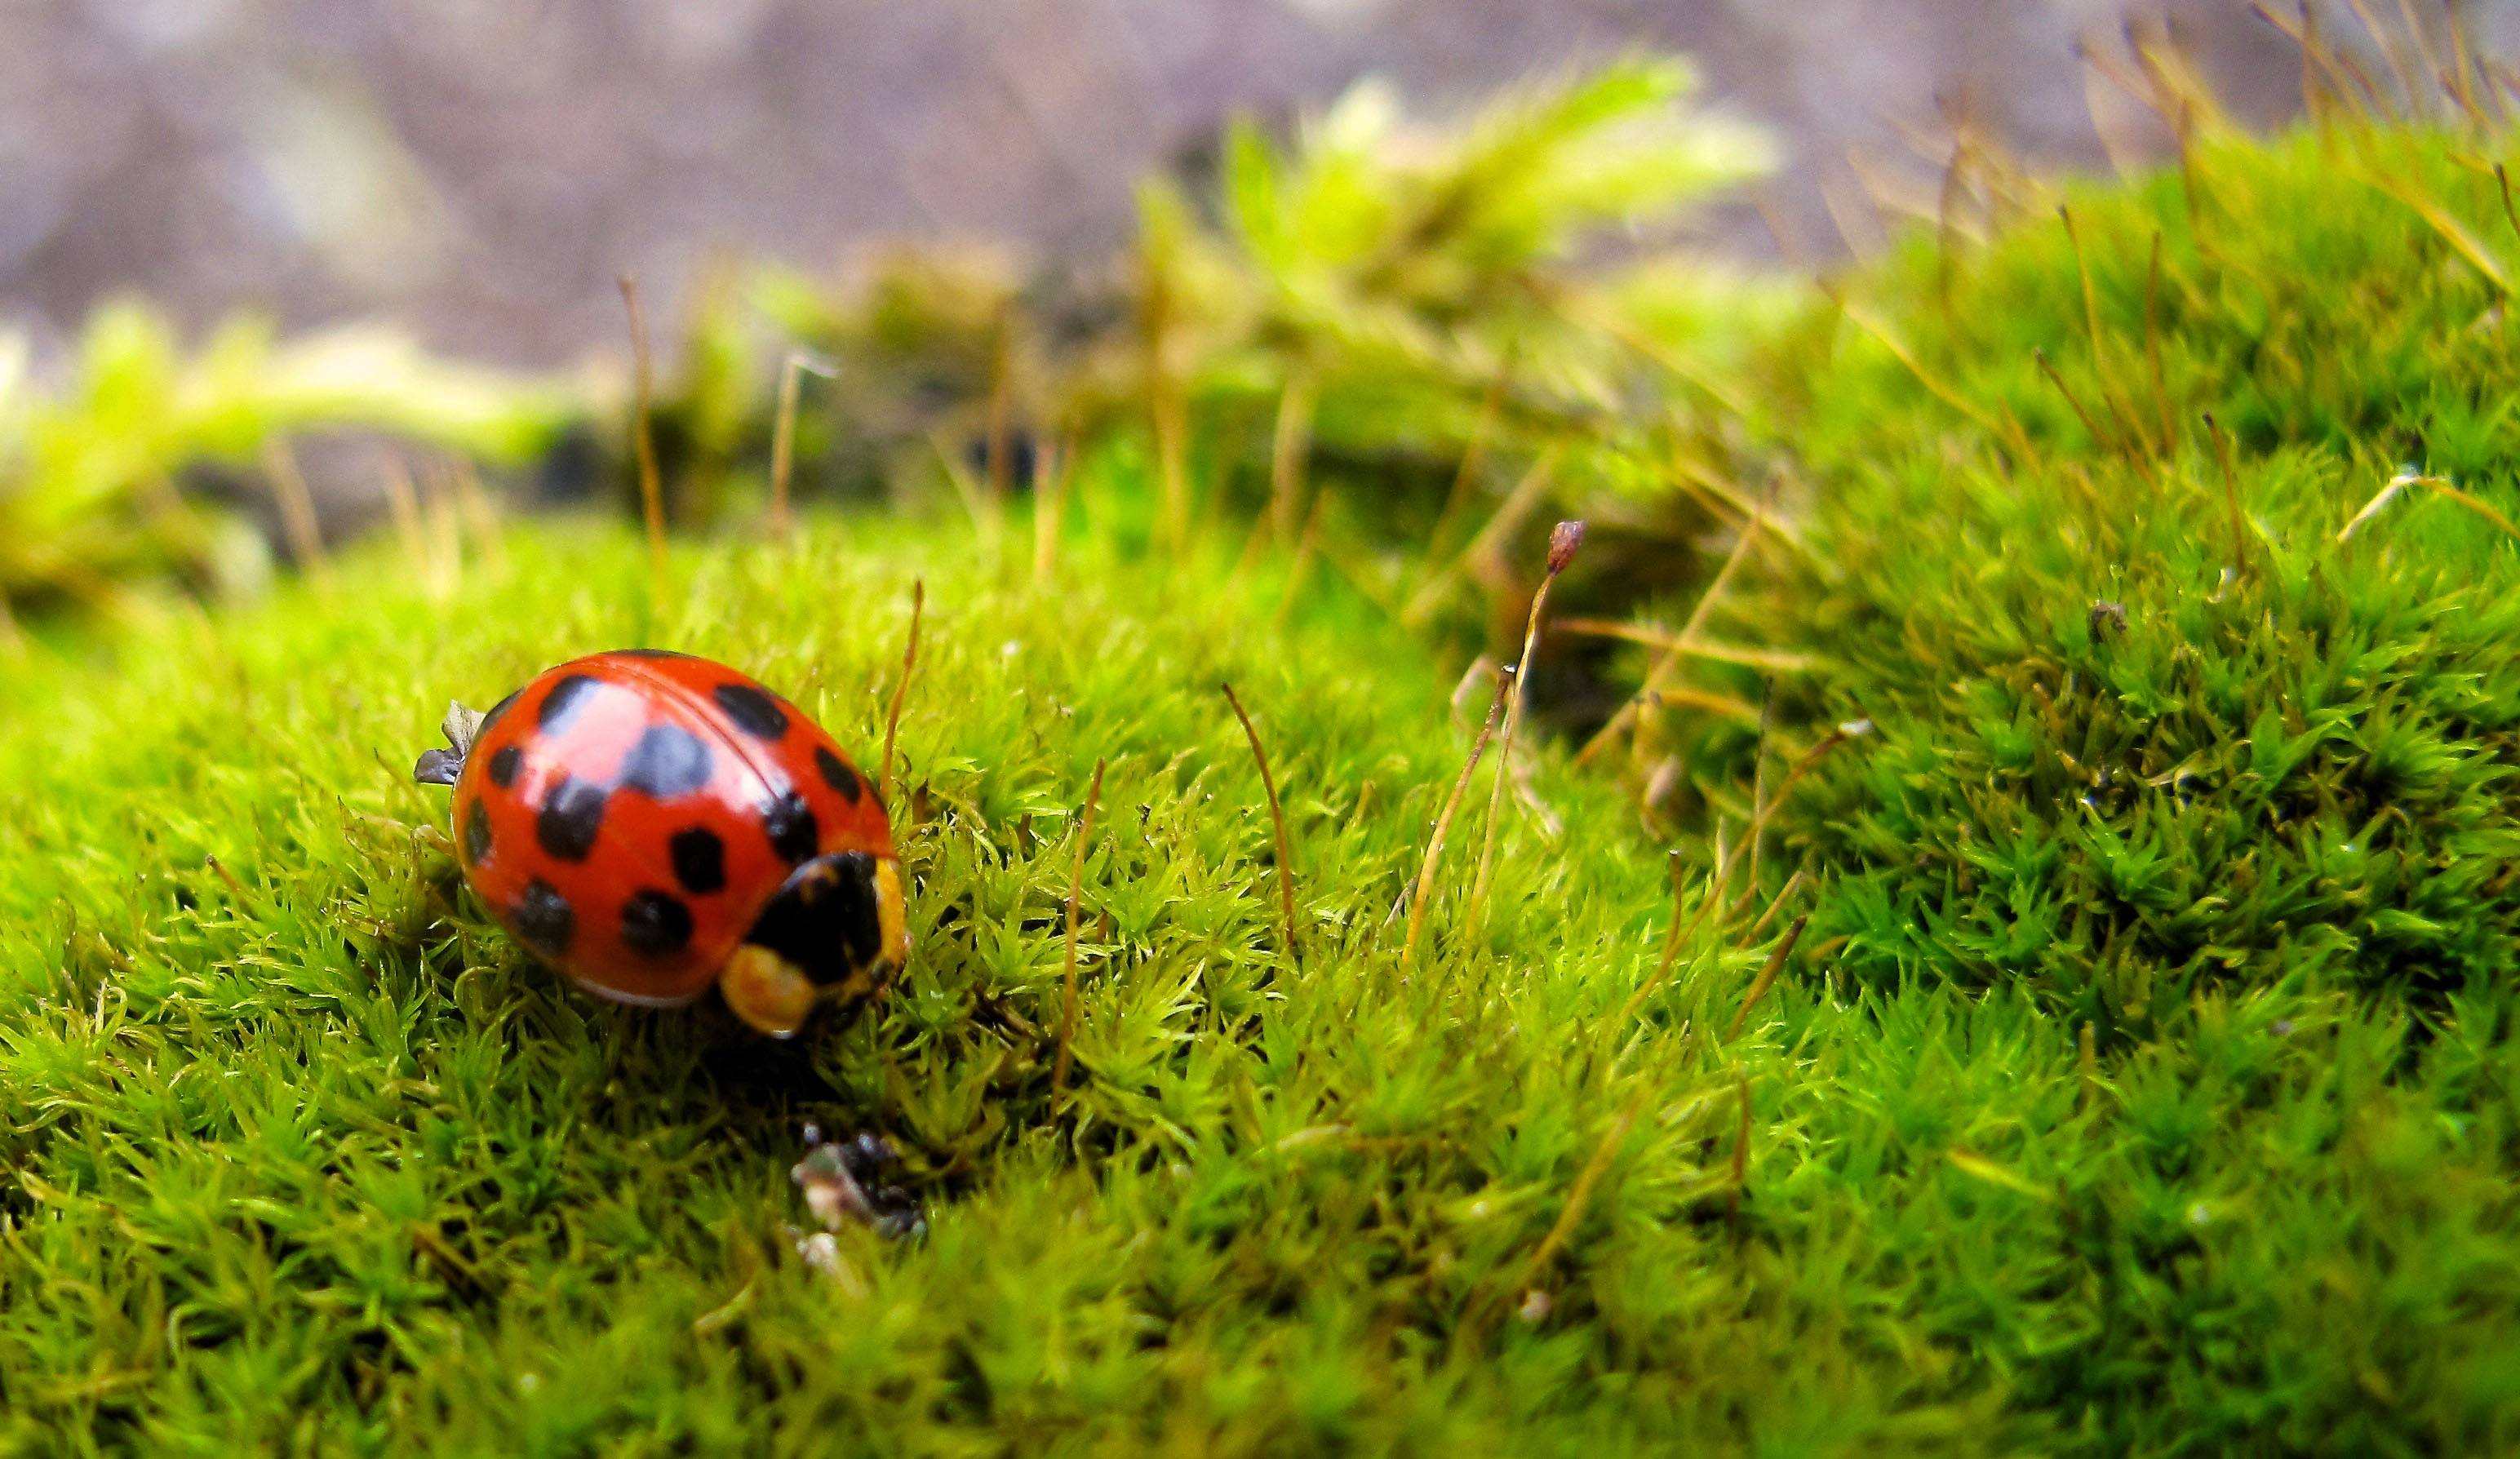 Many gardeners use pesticides — organic or otherwise — only as a last resort. They opt instead for such predatory insects as ladybugs, which individually can consume up to 5,000 aphids during their lifetime, and can be bought commercially and released from containers into the garden.